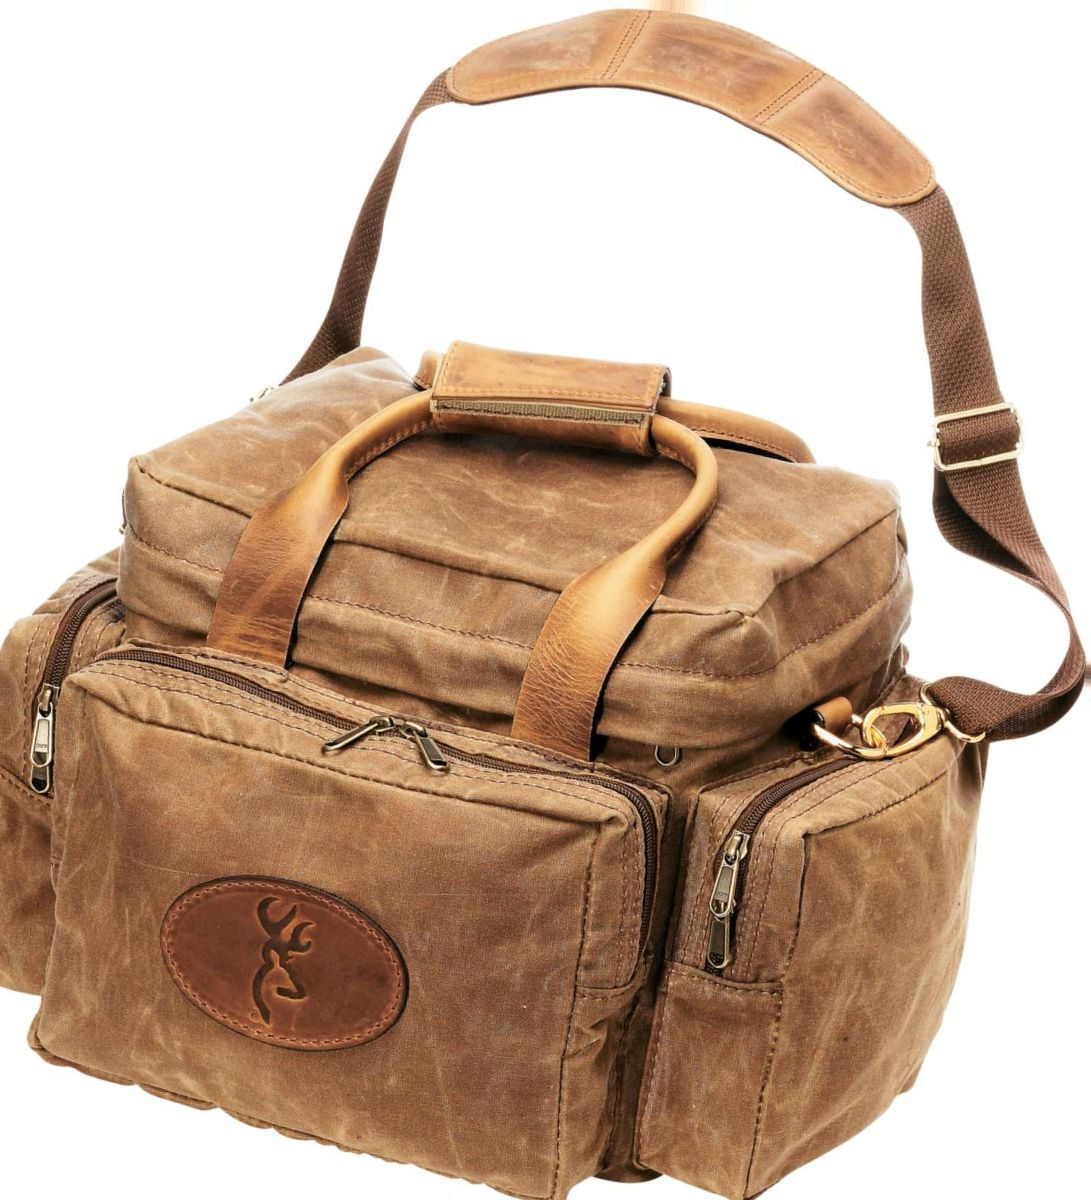 Browning® Santa Fe Shooter's Bag